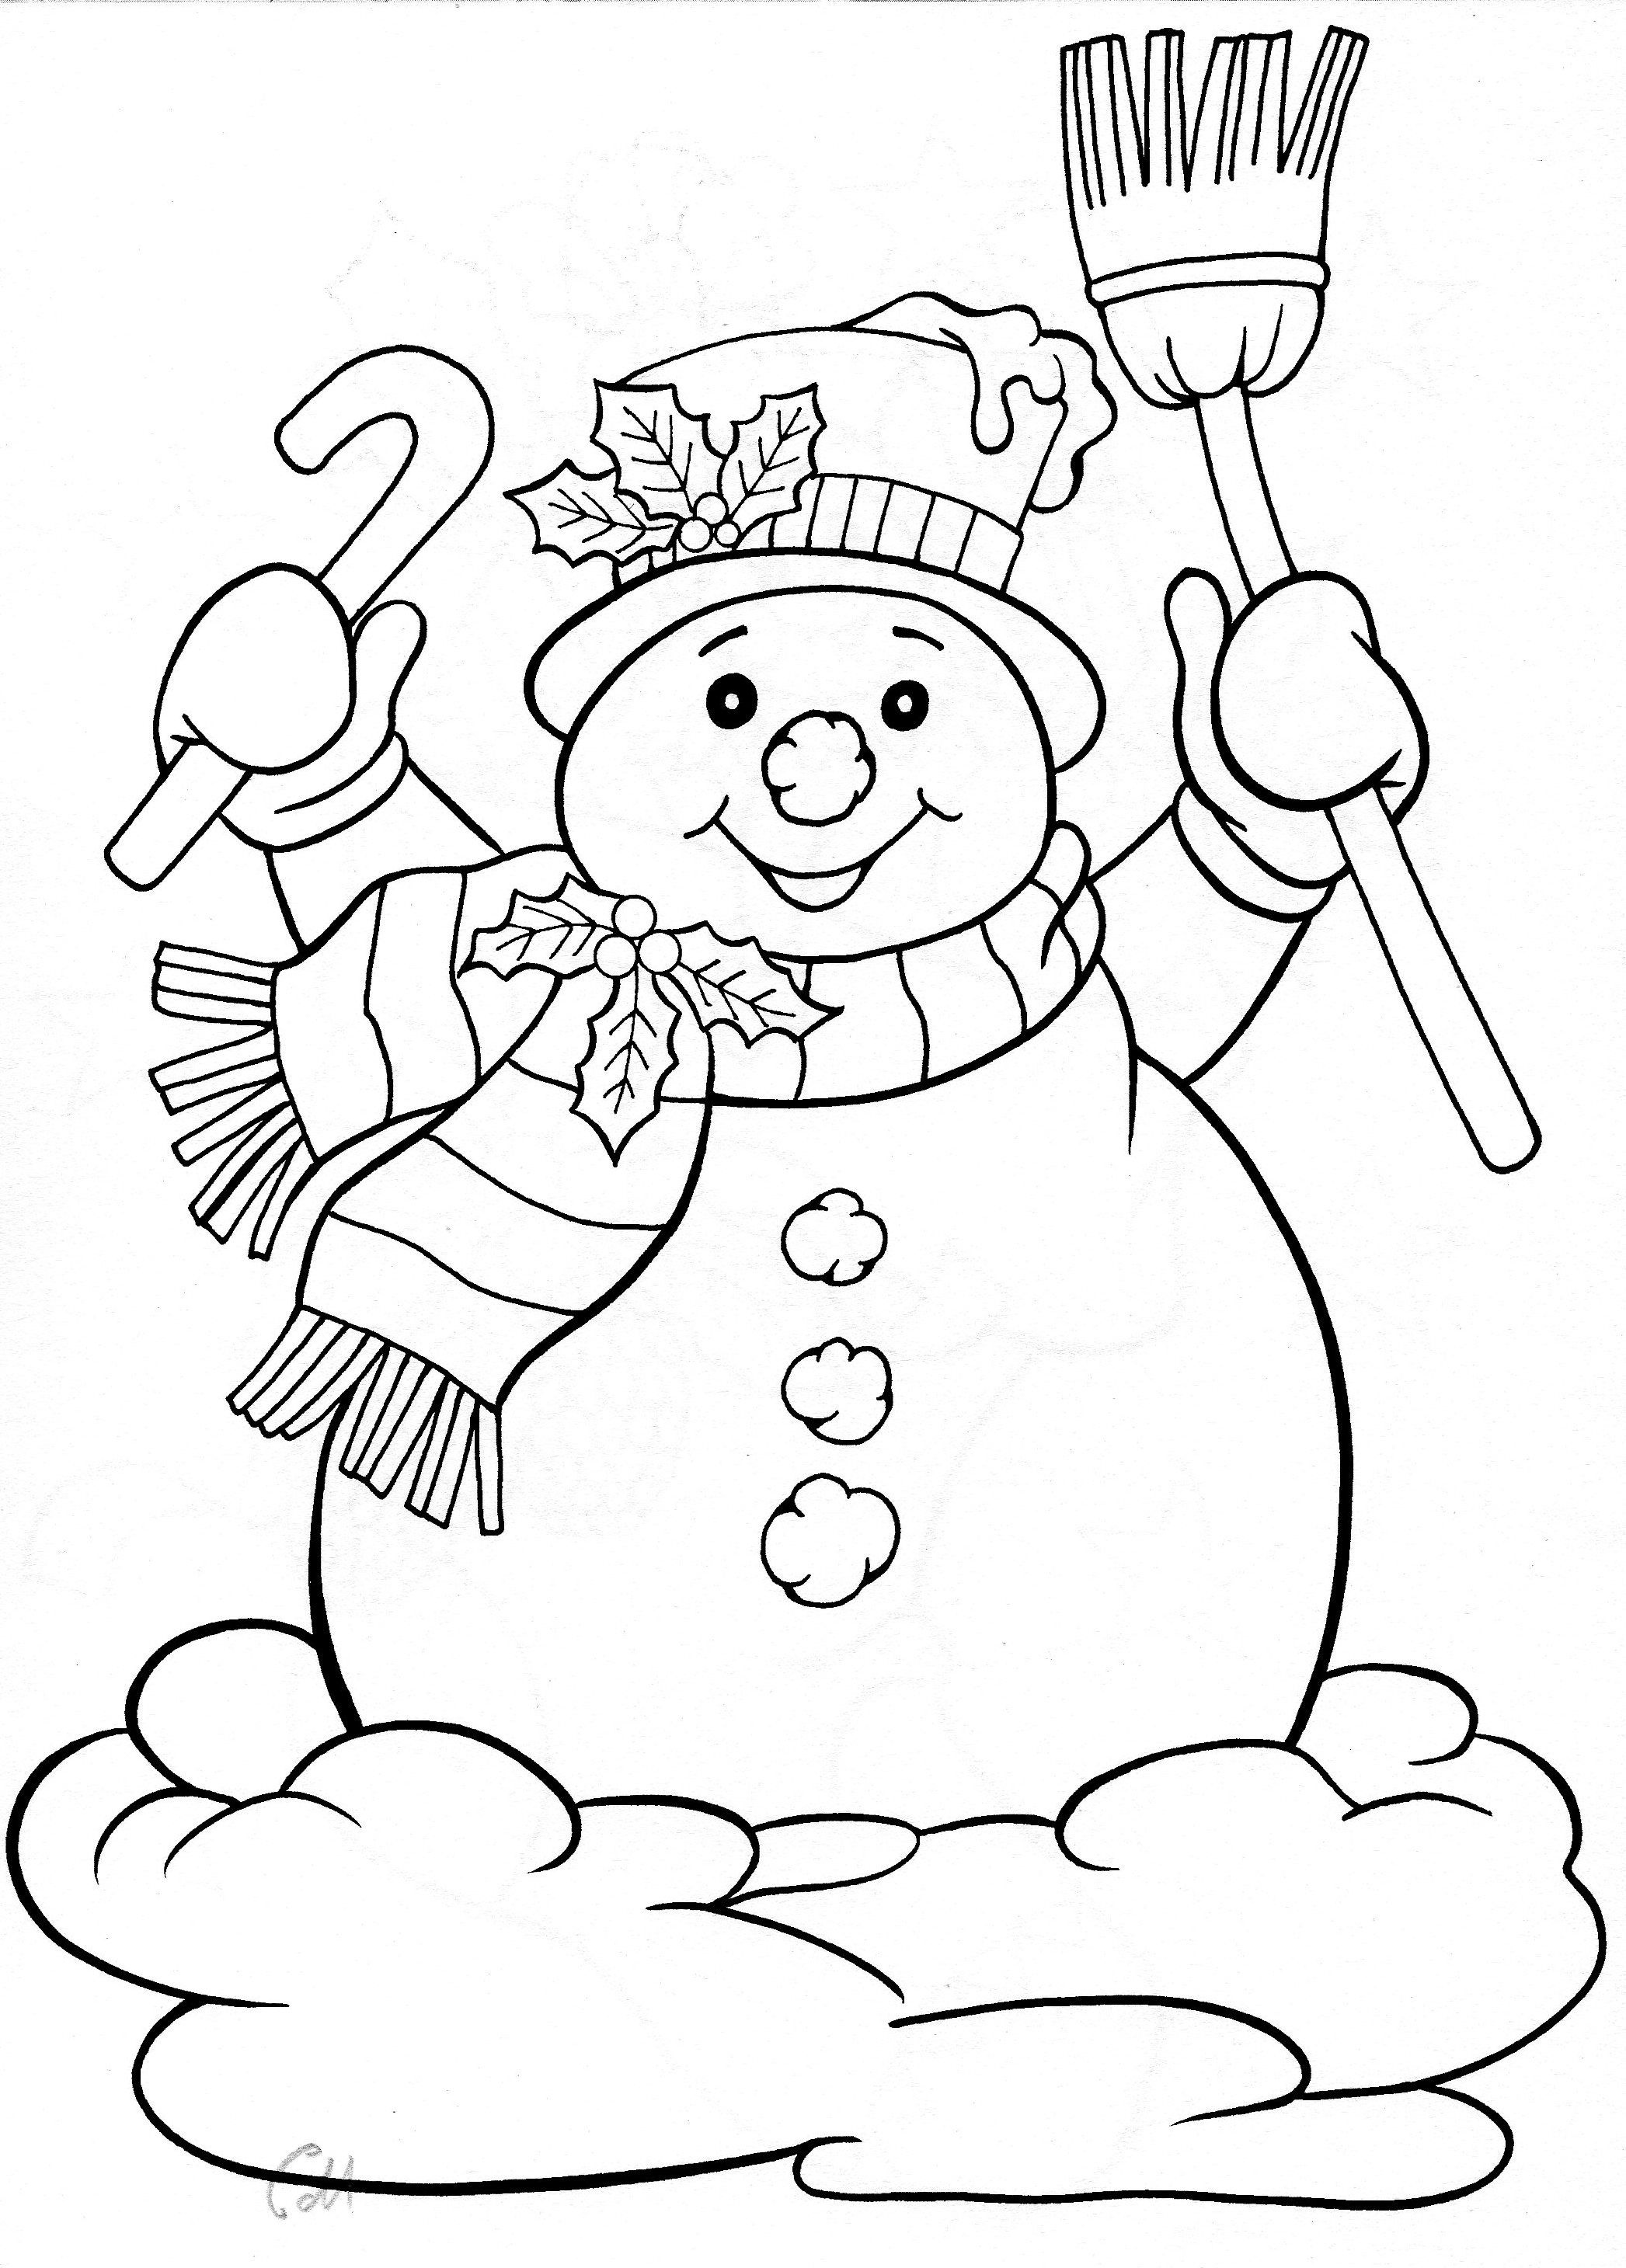 snowman for winter holiday Drawing template coloring embroidery